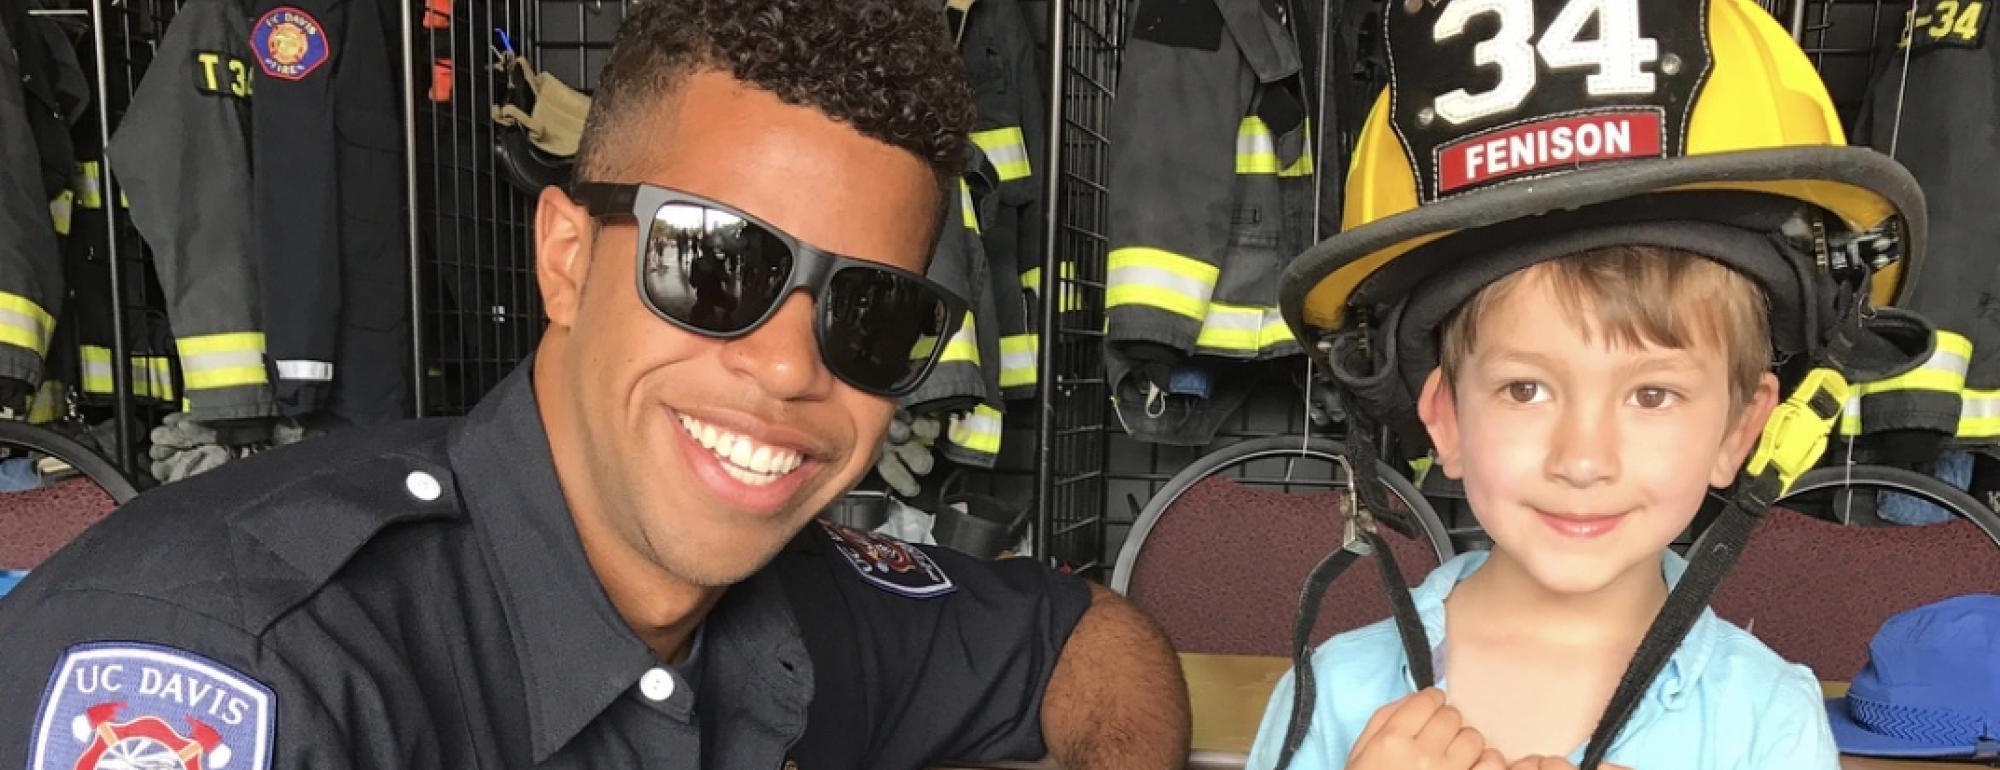 Student Firefighter with young station visitor